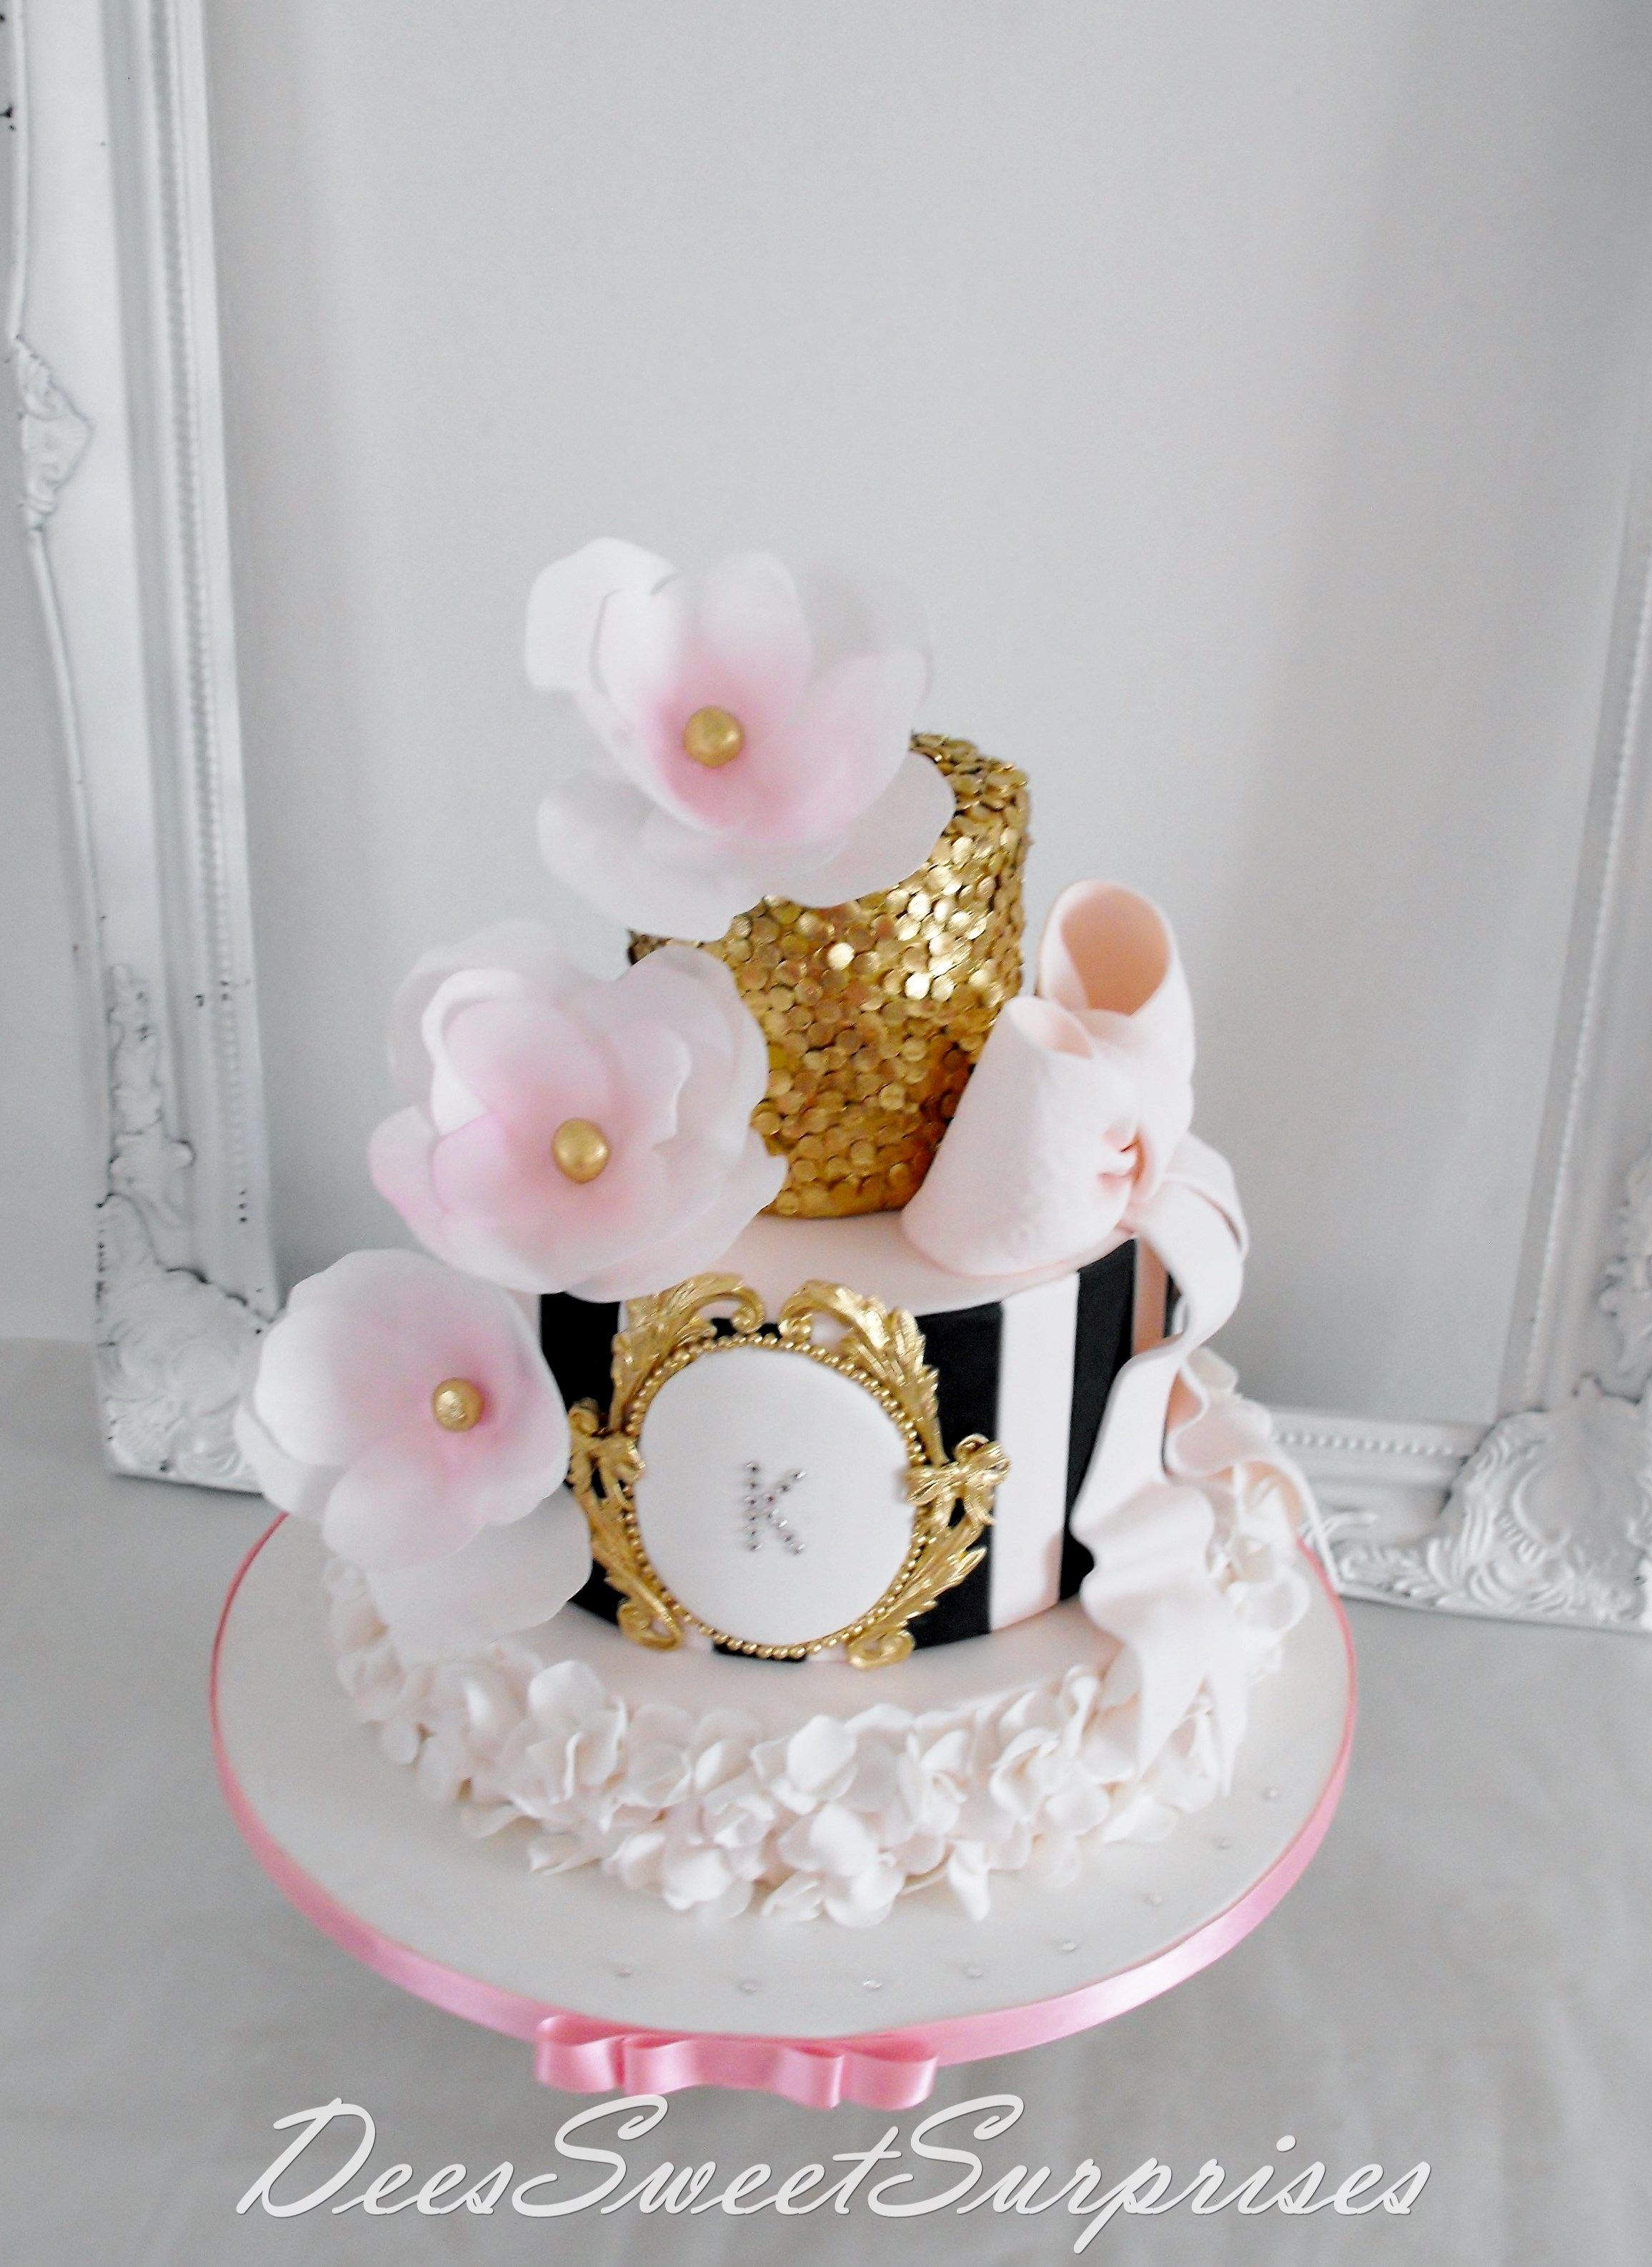 For My Beautiful Daughter Cakecentral Com